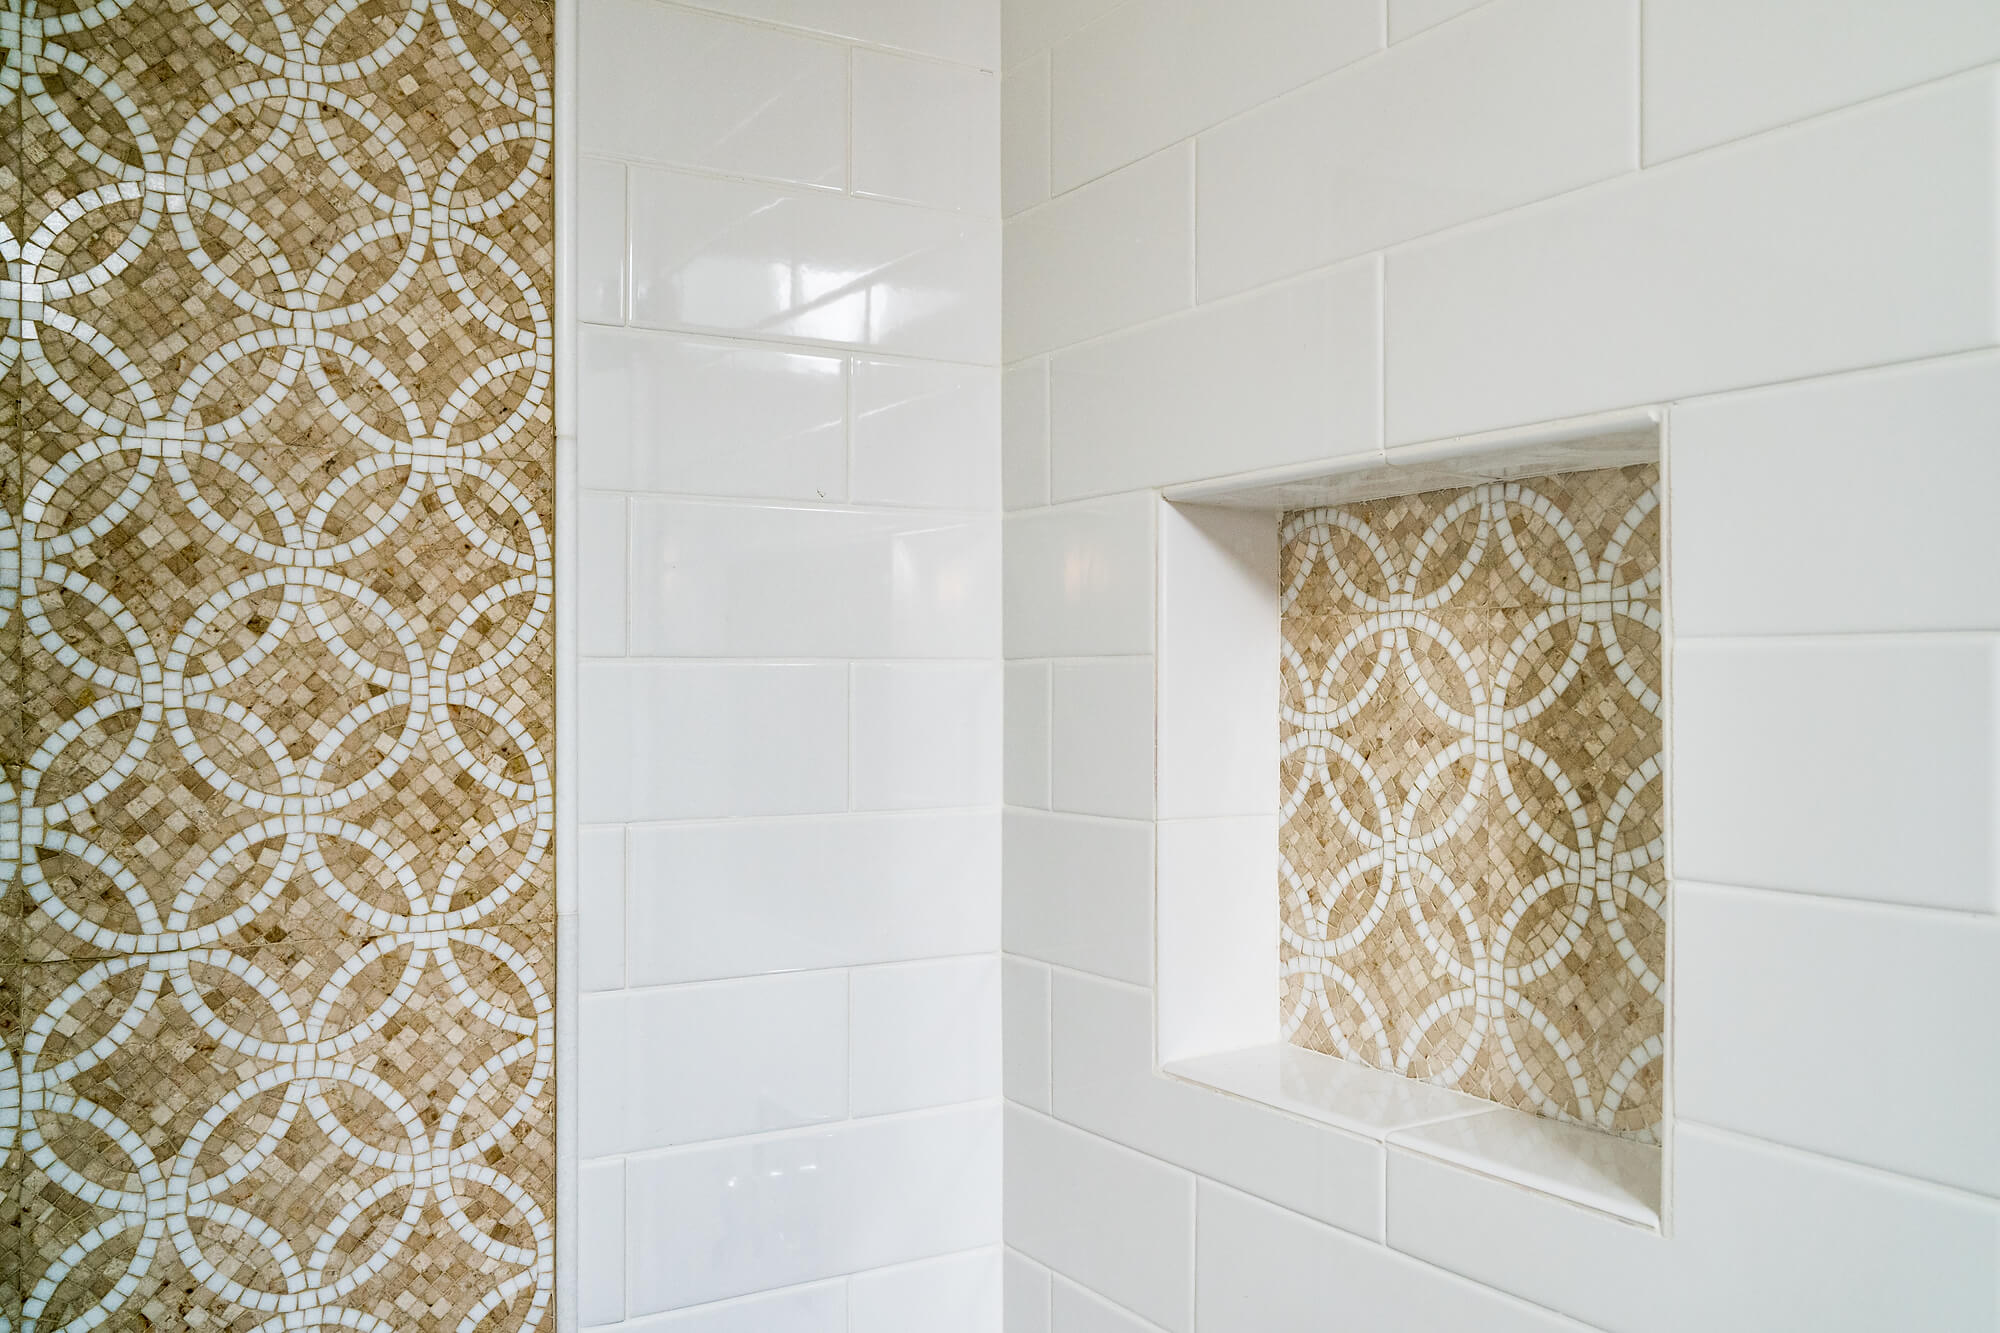 tile mosaic details in creme and white shower